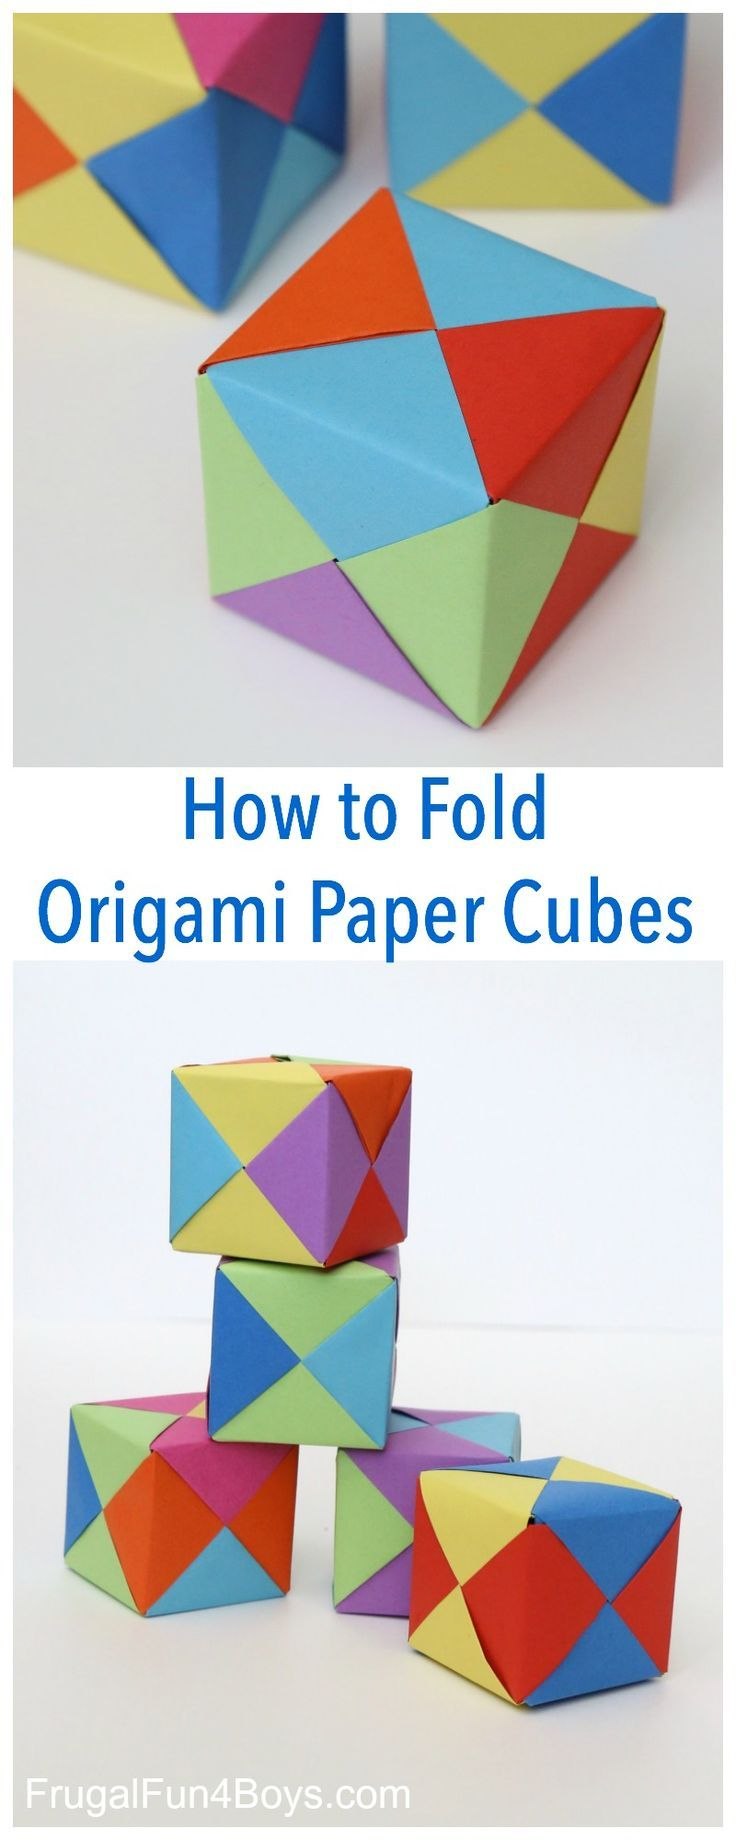 548 Best Falten Images On Pinterest Paper Animals Toys And Folding Diagram 1 Of 3 Scottish Terrier Dog Money Origami How To Fold Cubes Great Project For Kids